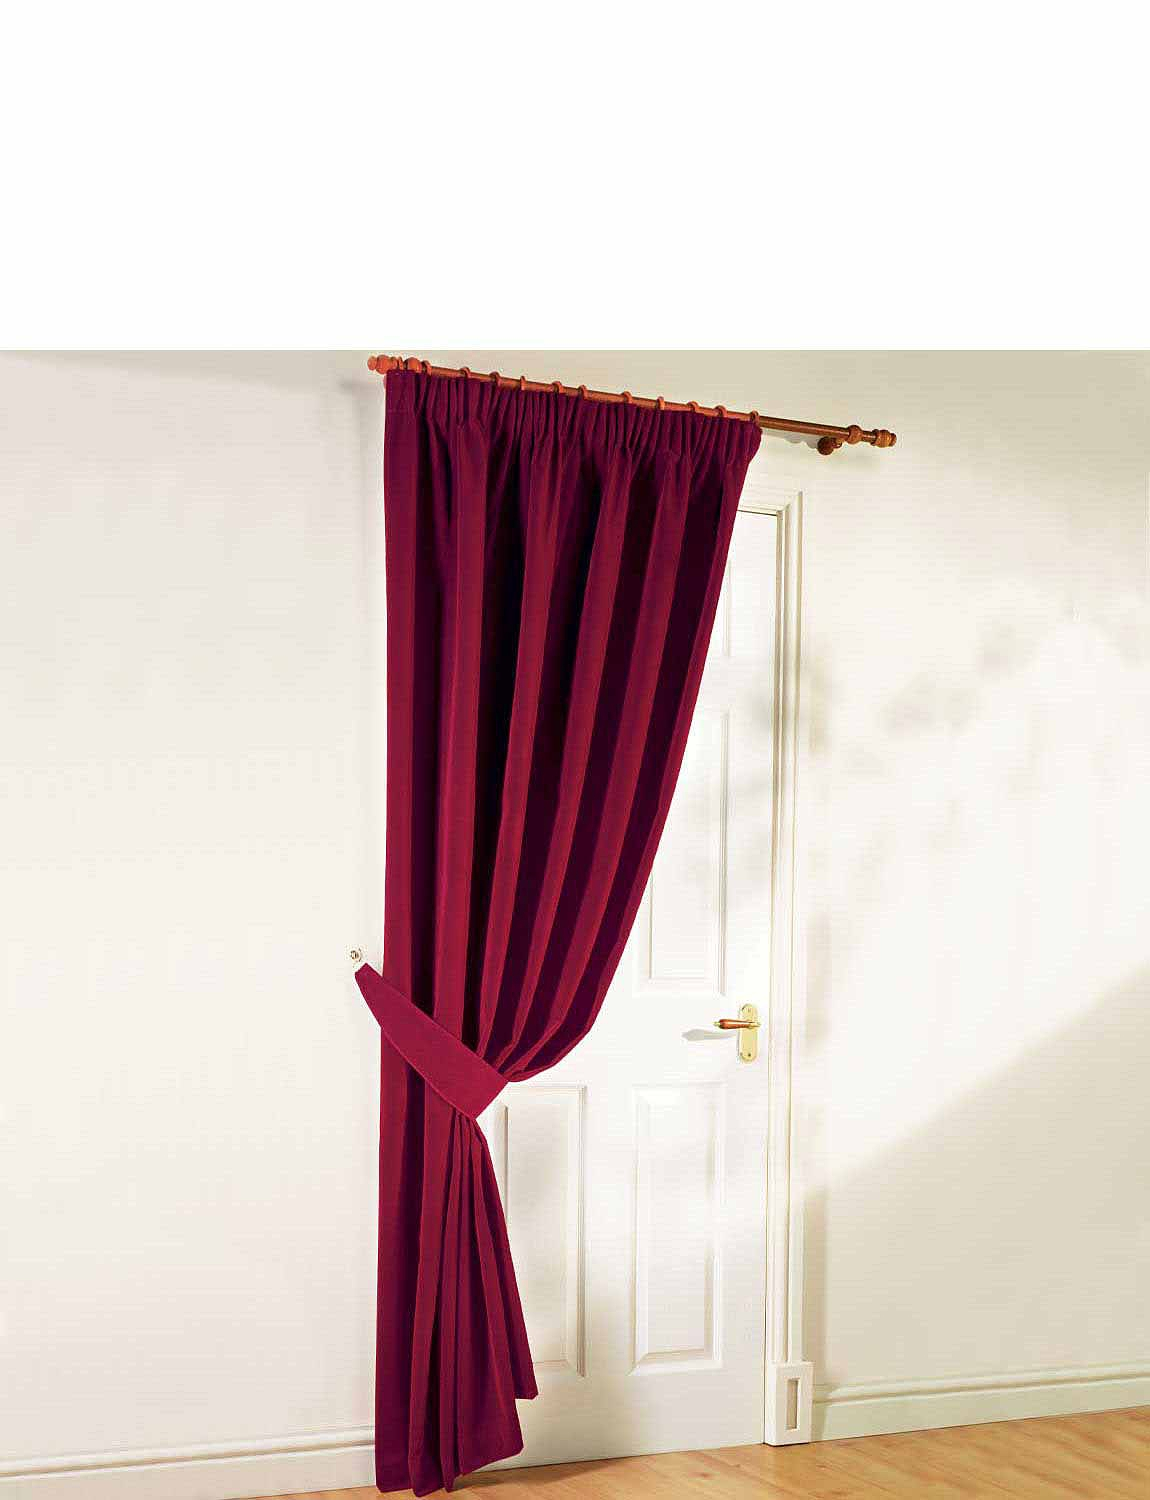 THERMAL VELOUR CURTAINS Door Curtians